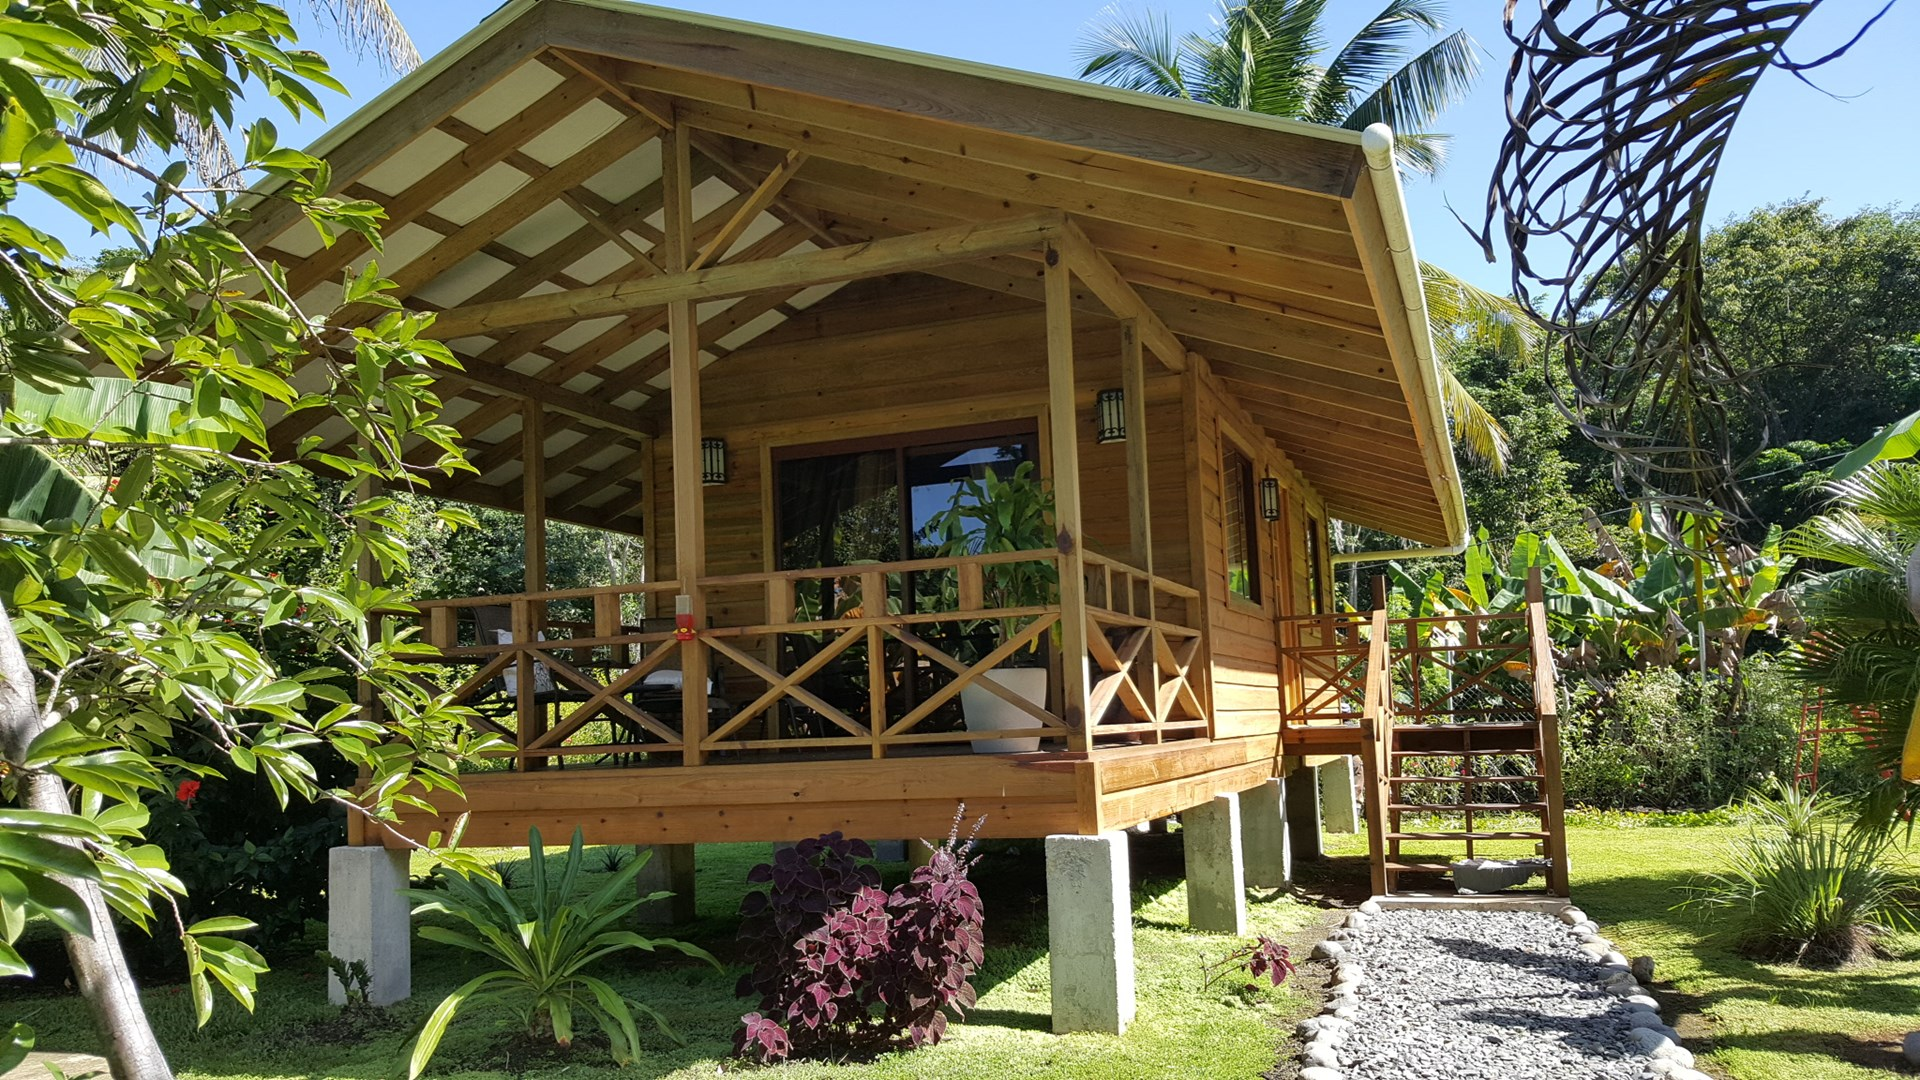 2 New Affordable  Coastal Cabins in  Bocas del Toro, Panama